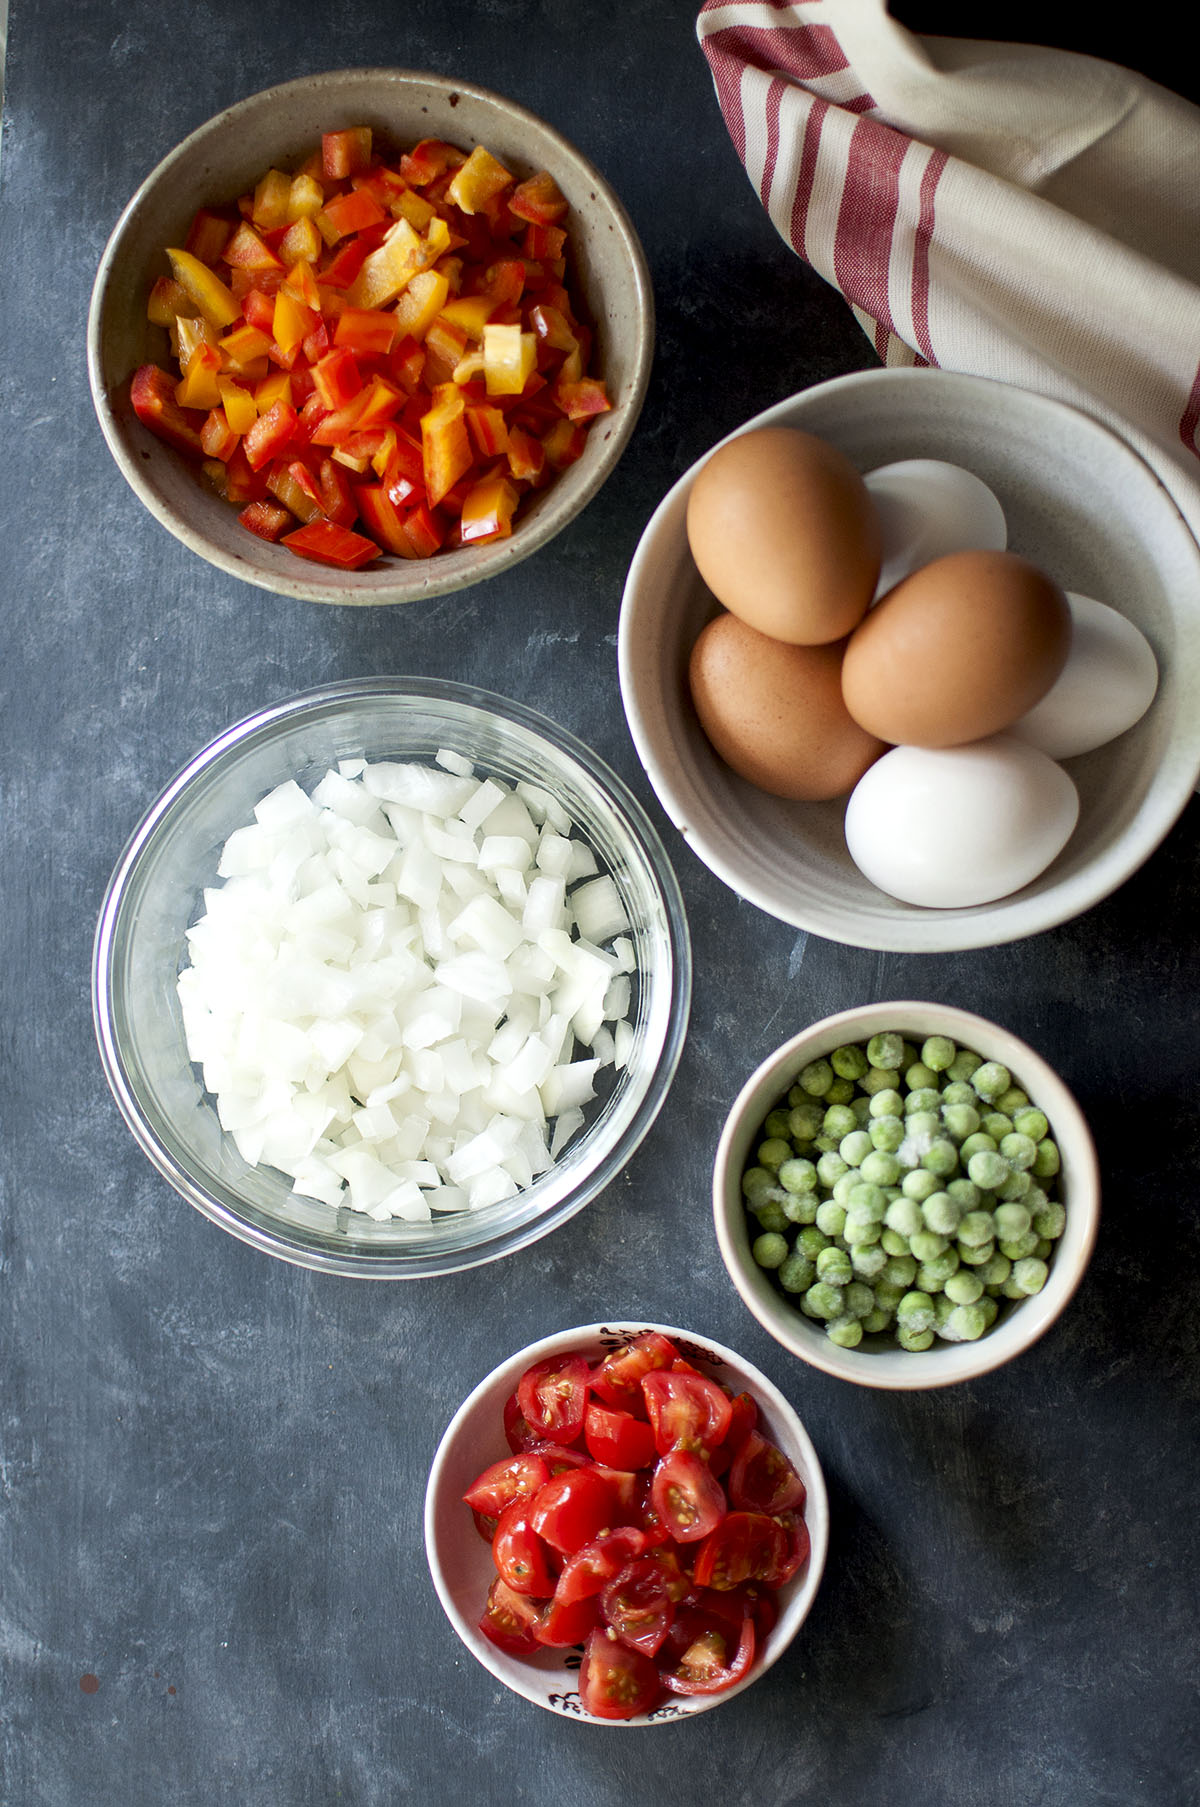 Bowls with chopped bell peppers, onions, tomatoes, frozen peas and bowl of white & brown eggs